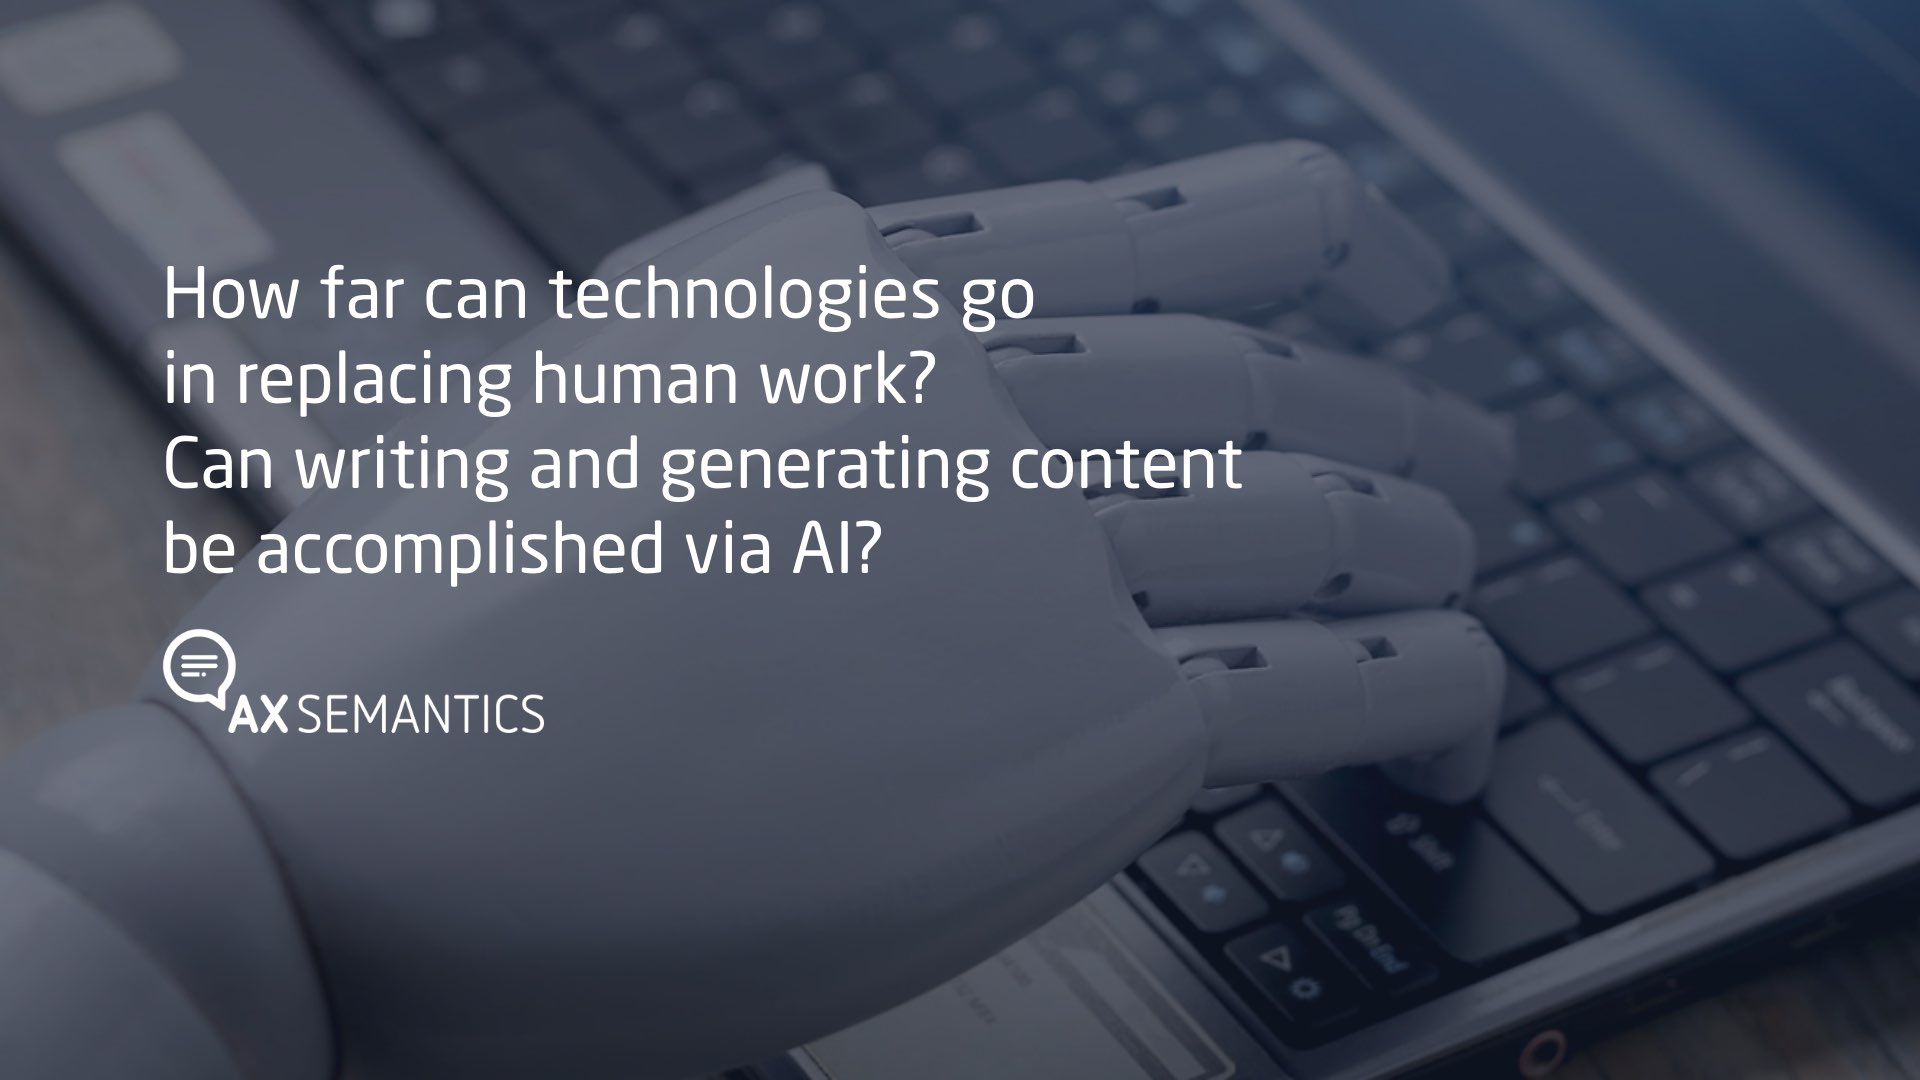 Can writing and generating content be accomplished via AI